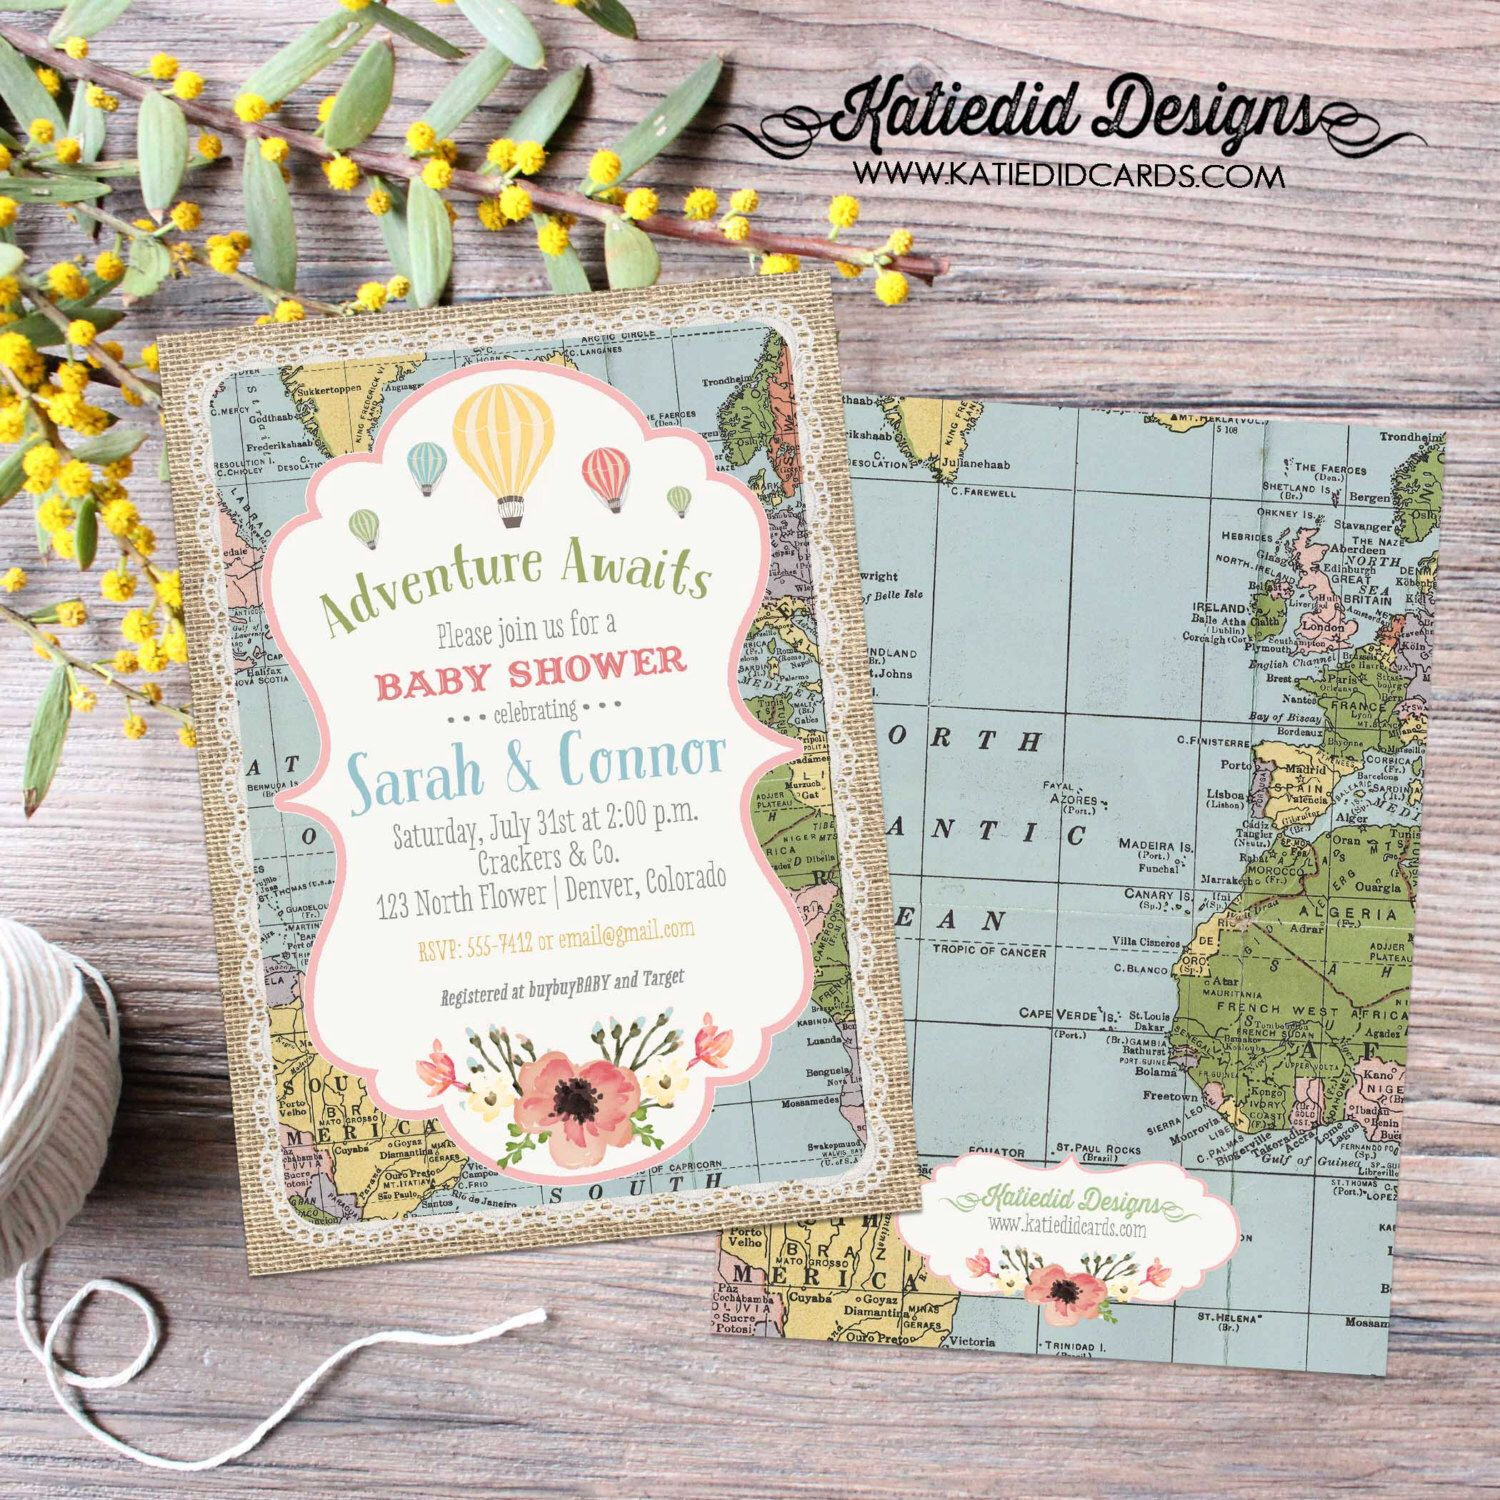 Adventure Awaits Hot Air Balloon Travel Theme Baby Shower Etsy Adventure Awaits Baby Shower Baby Shower Invitations Adventure Baby Shower